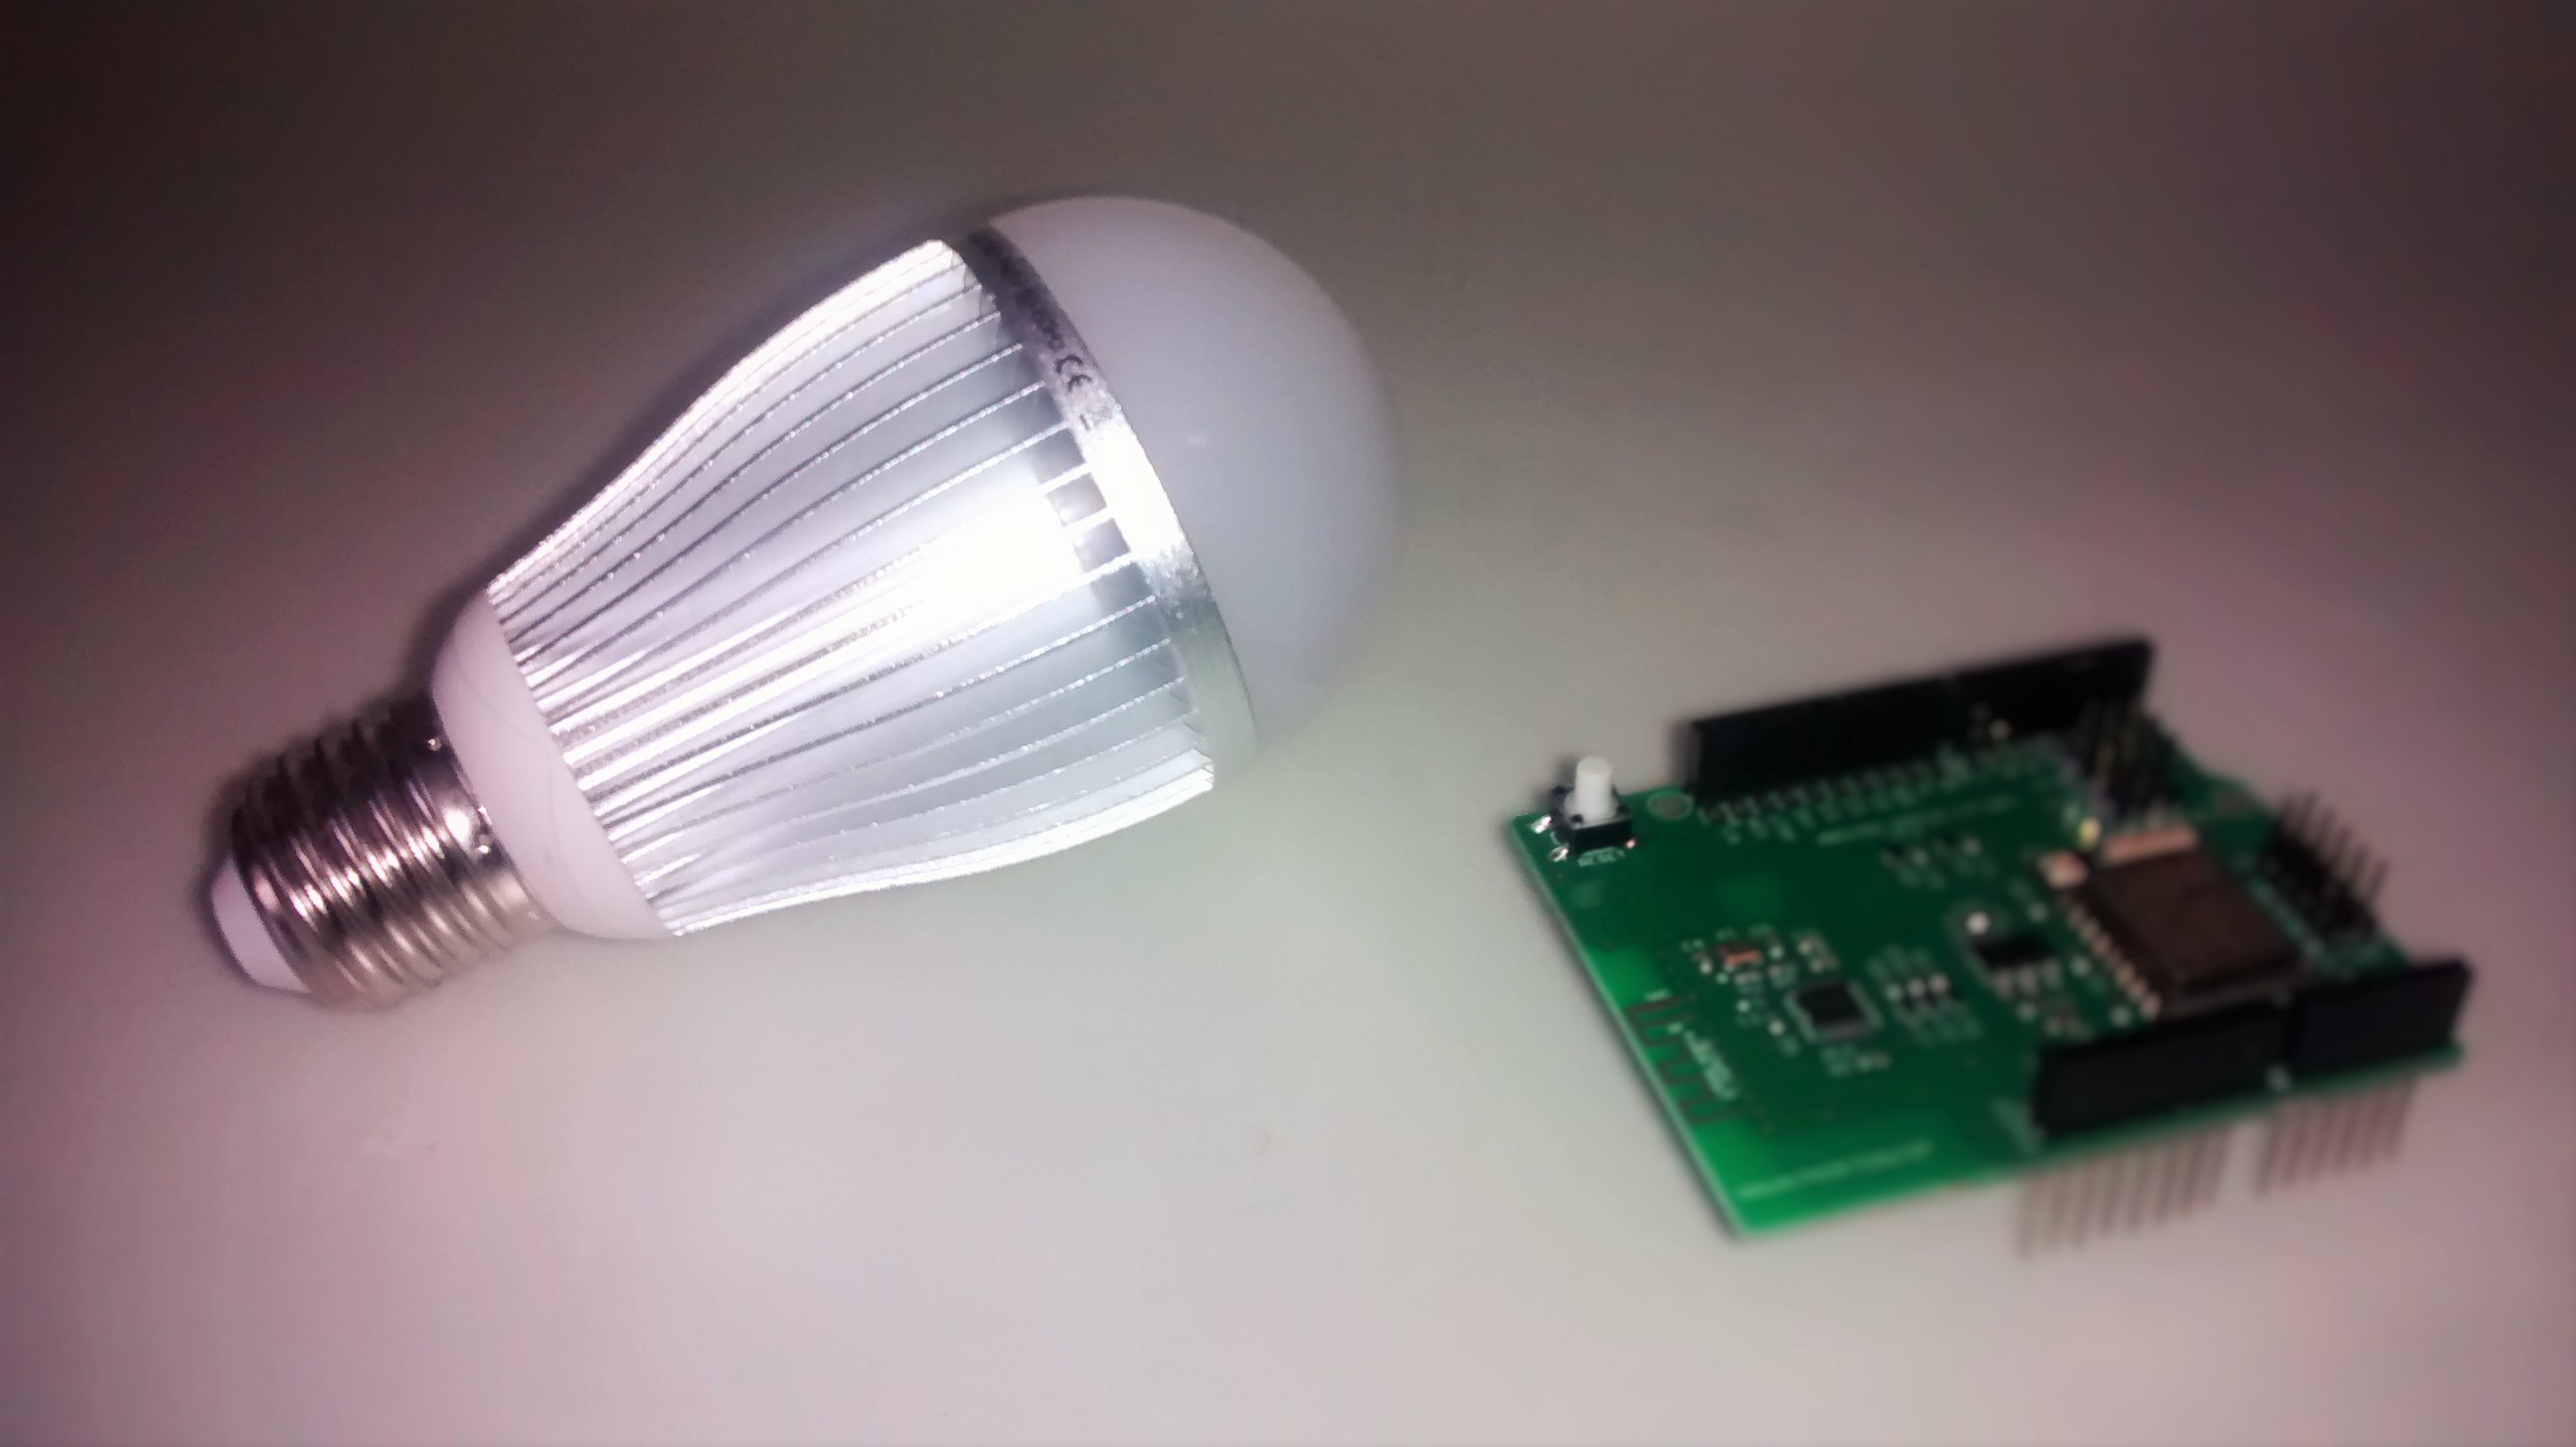 Hue Compatible Lampen : Build your diy arduino compatible philips hue like led bulb using